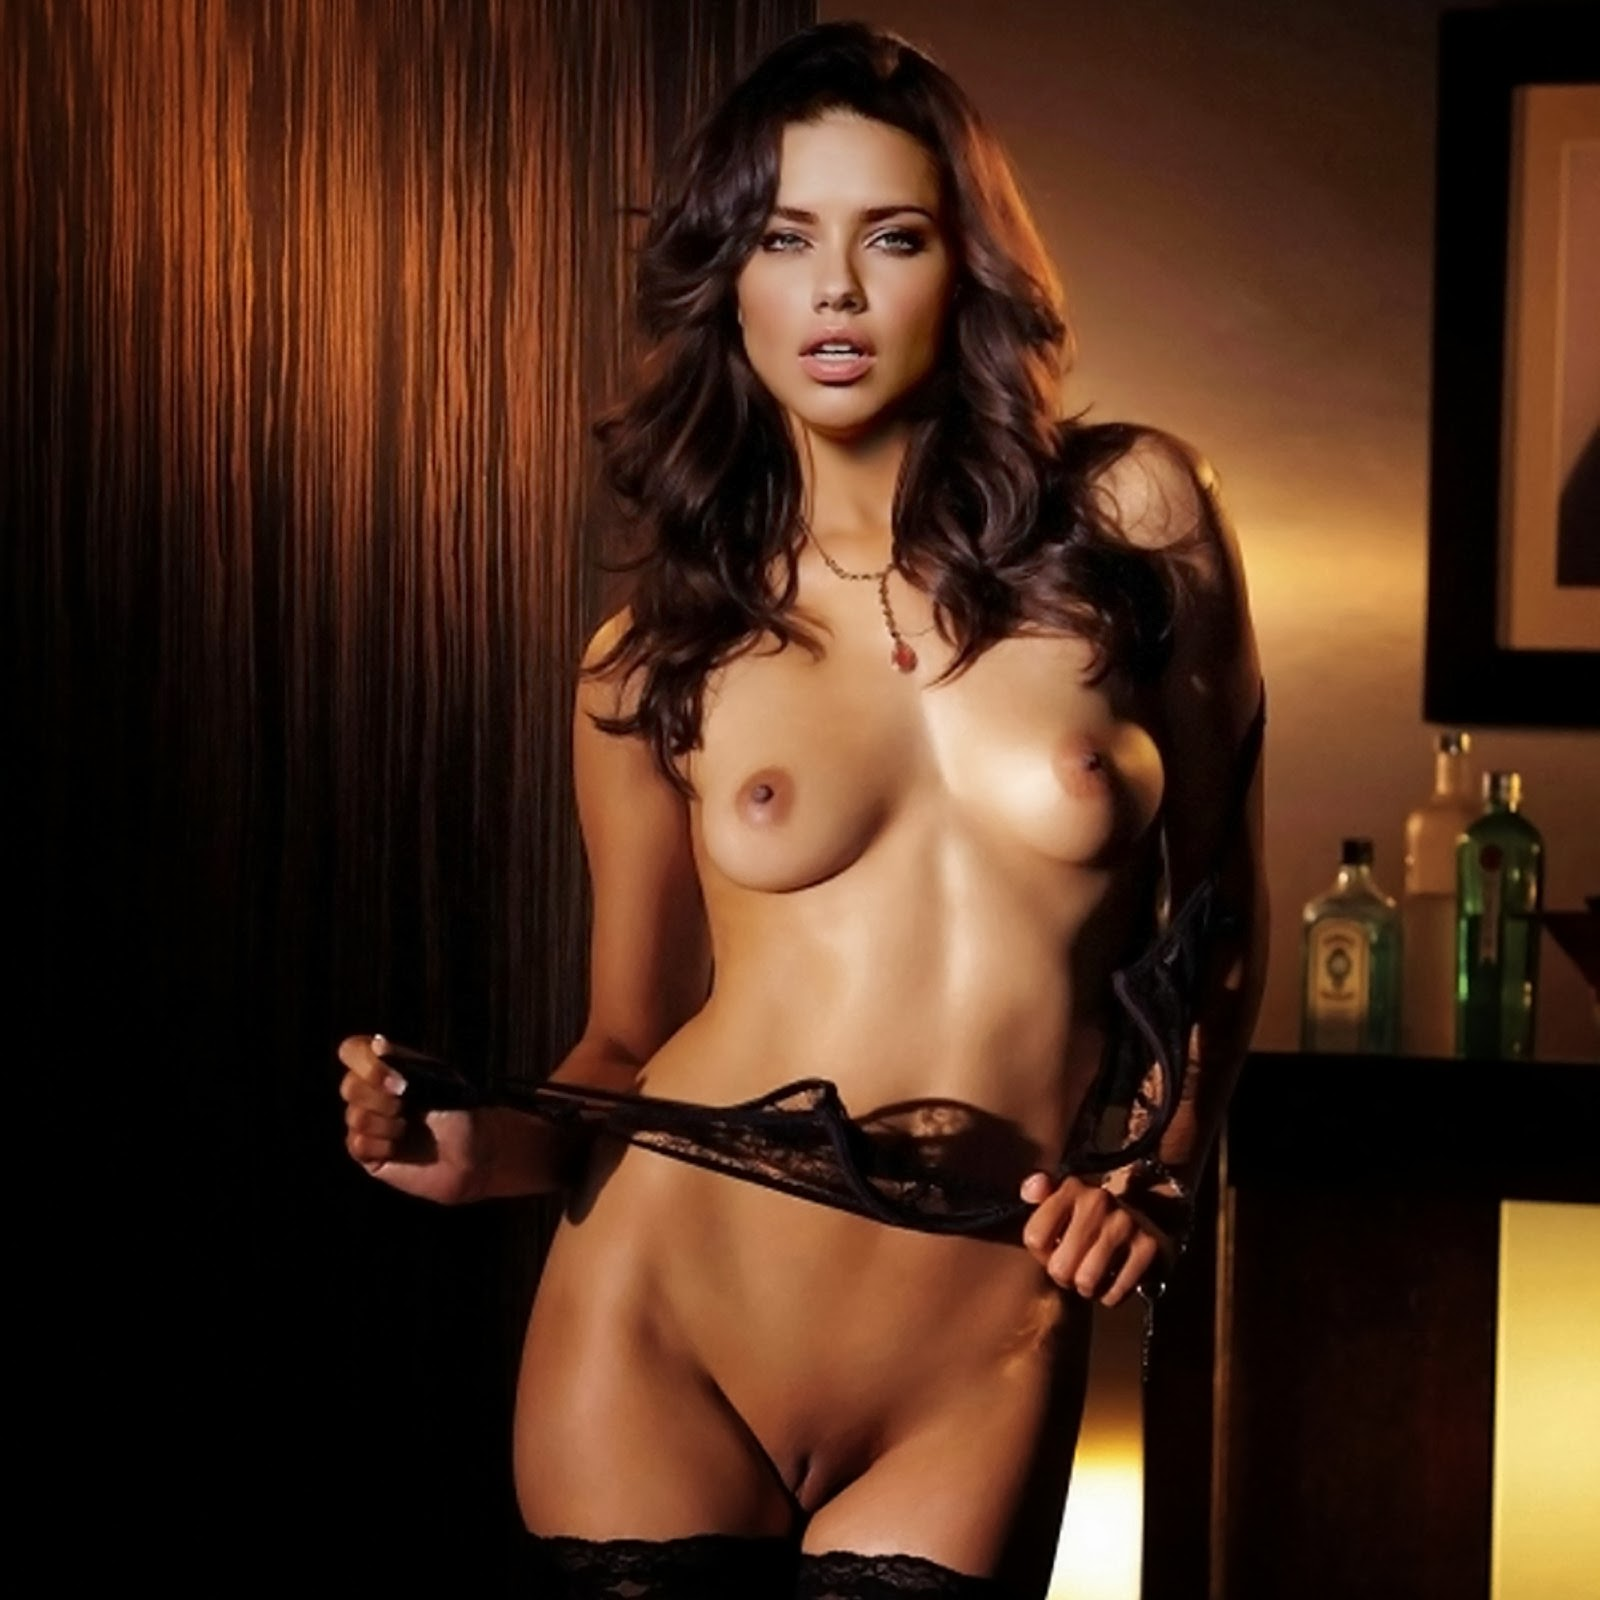 MILF Adriana lima fuck the church